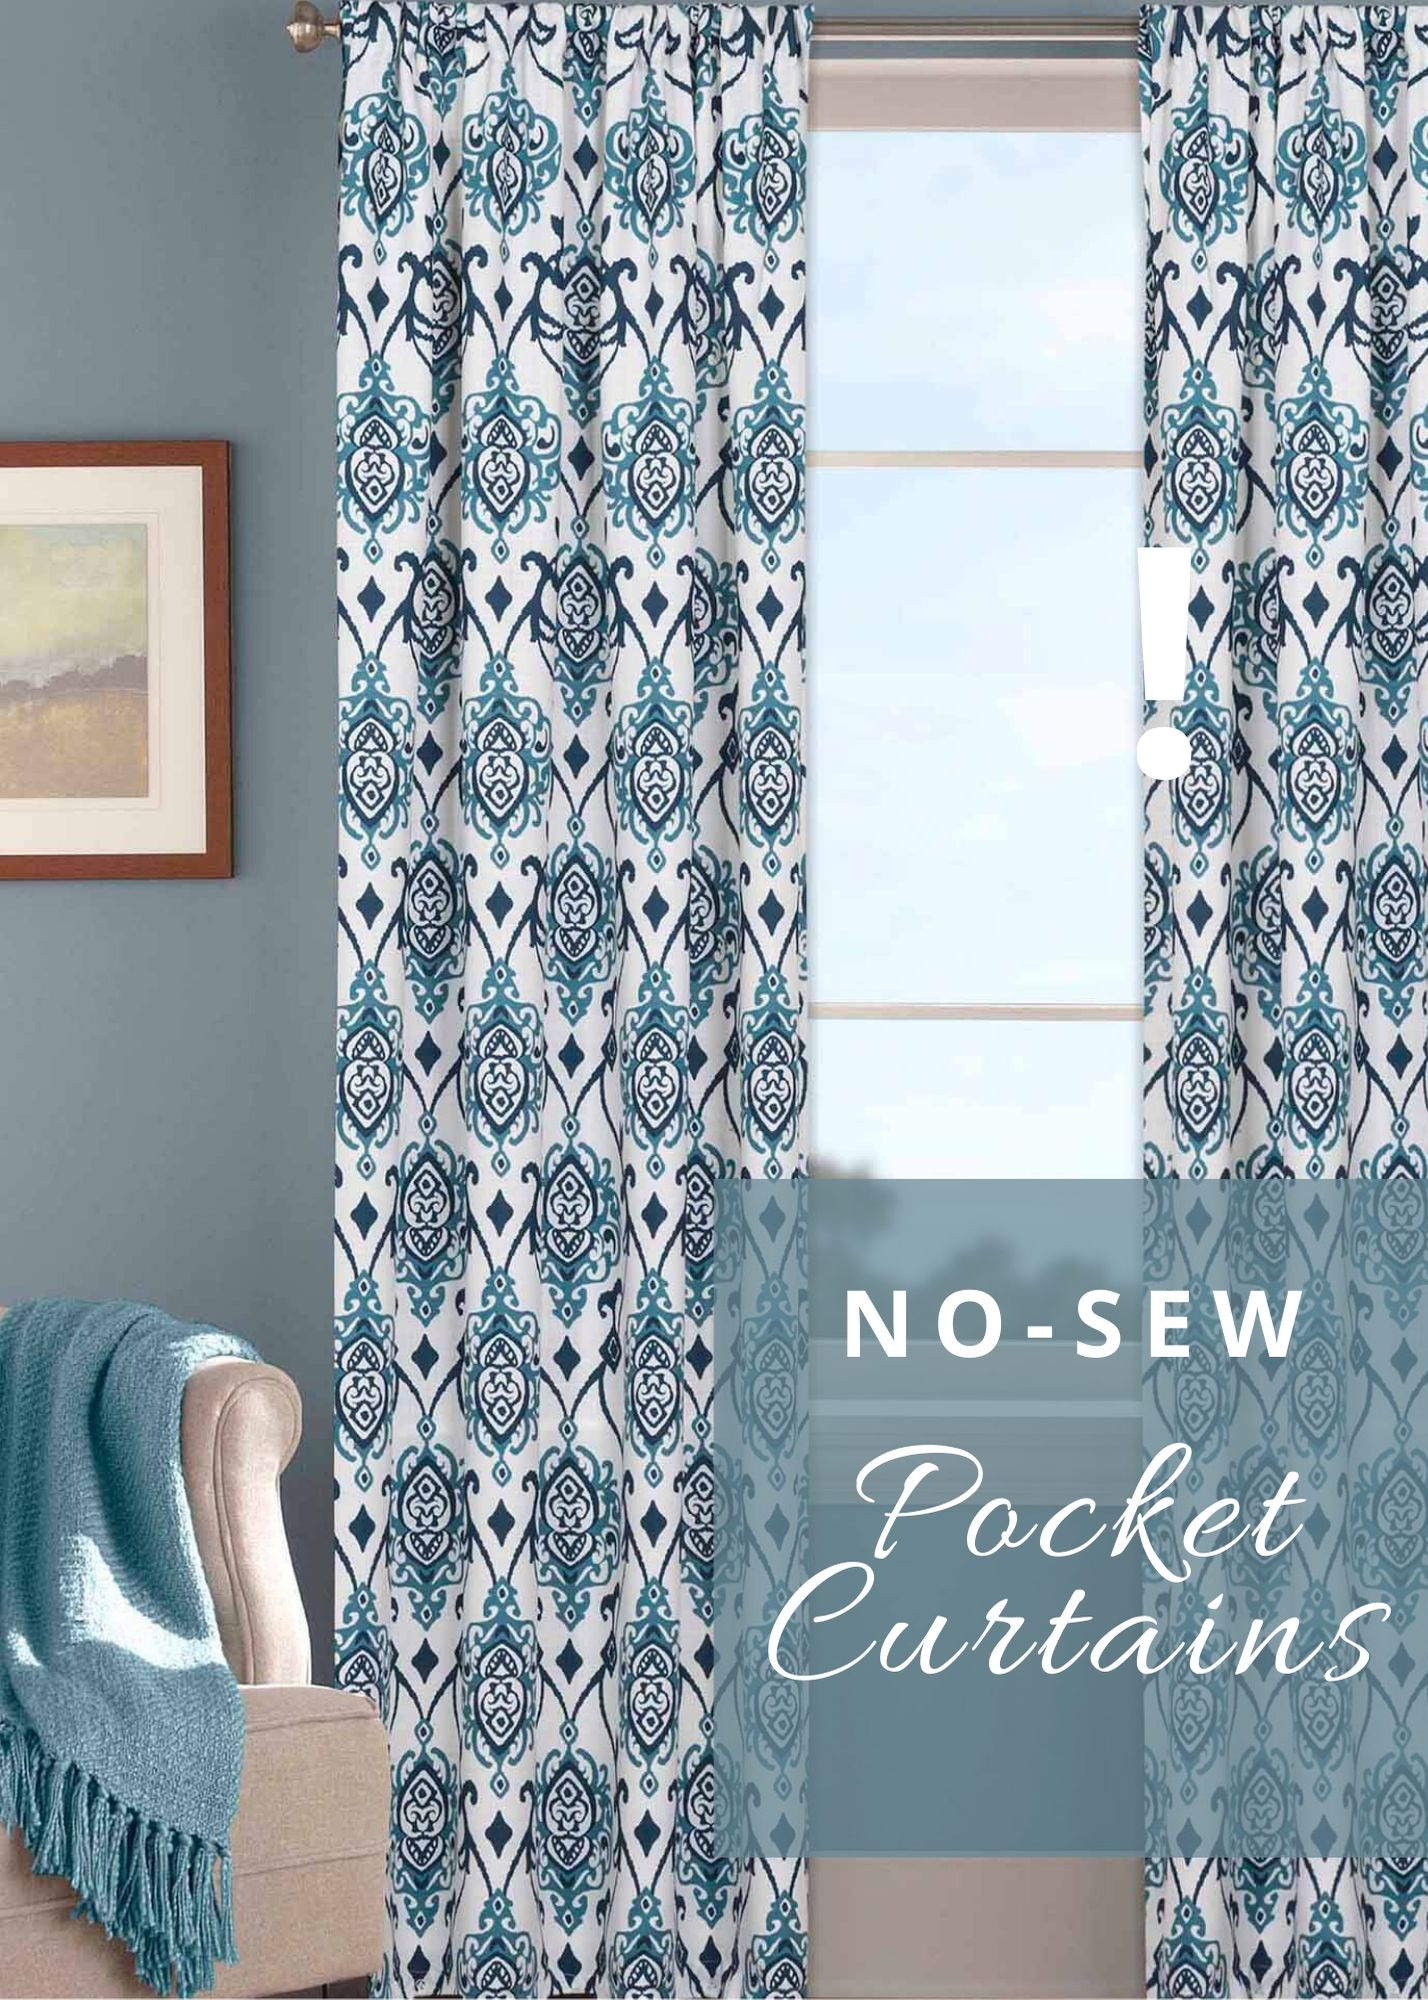 DIY How To Make No Sew Pocket Curtains